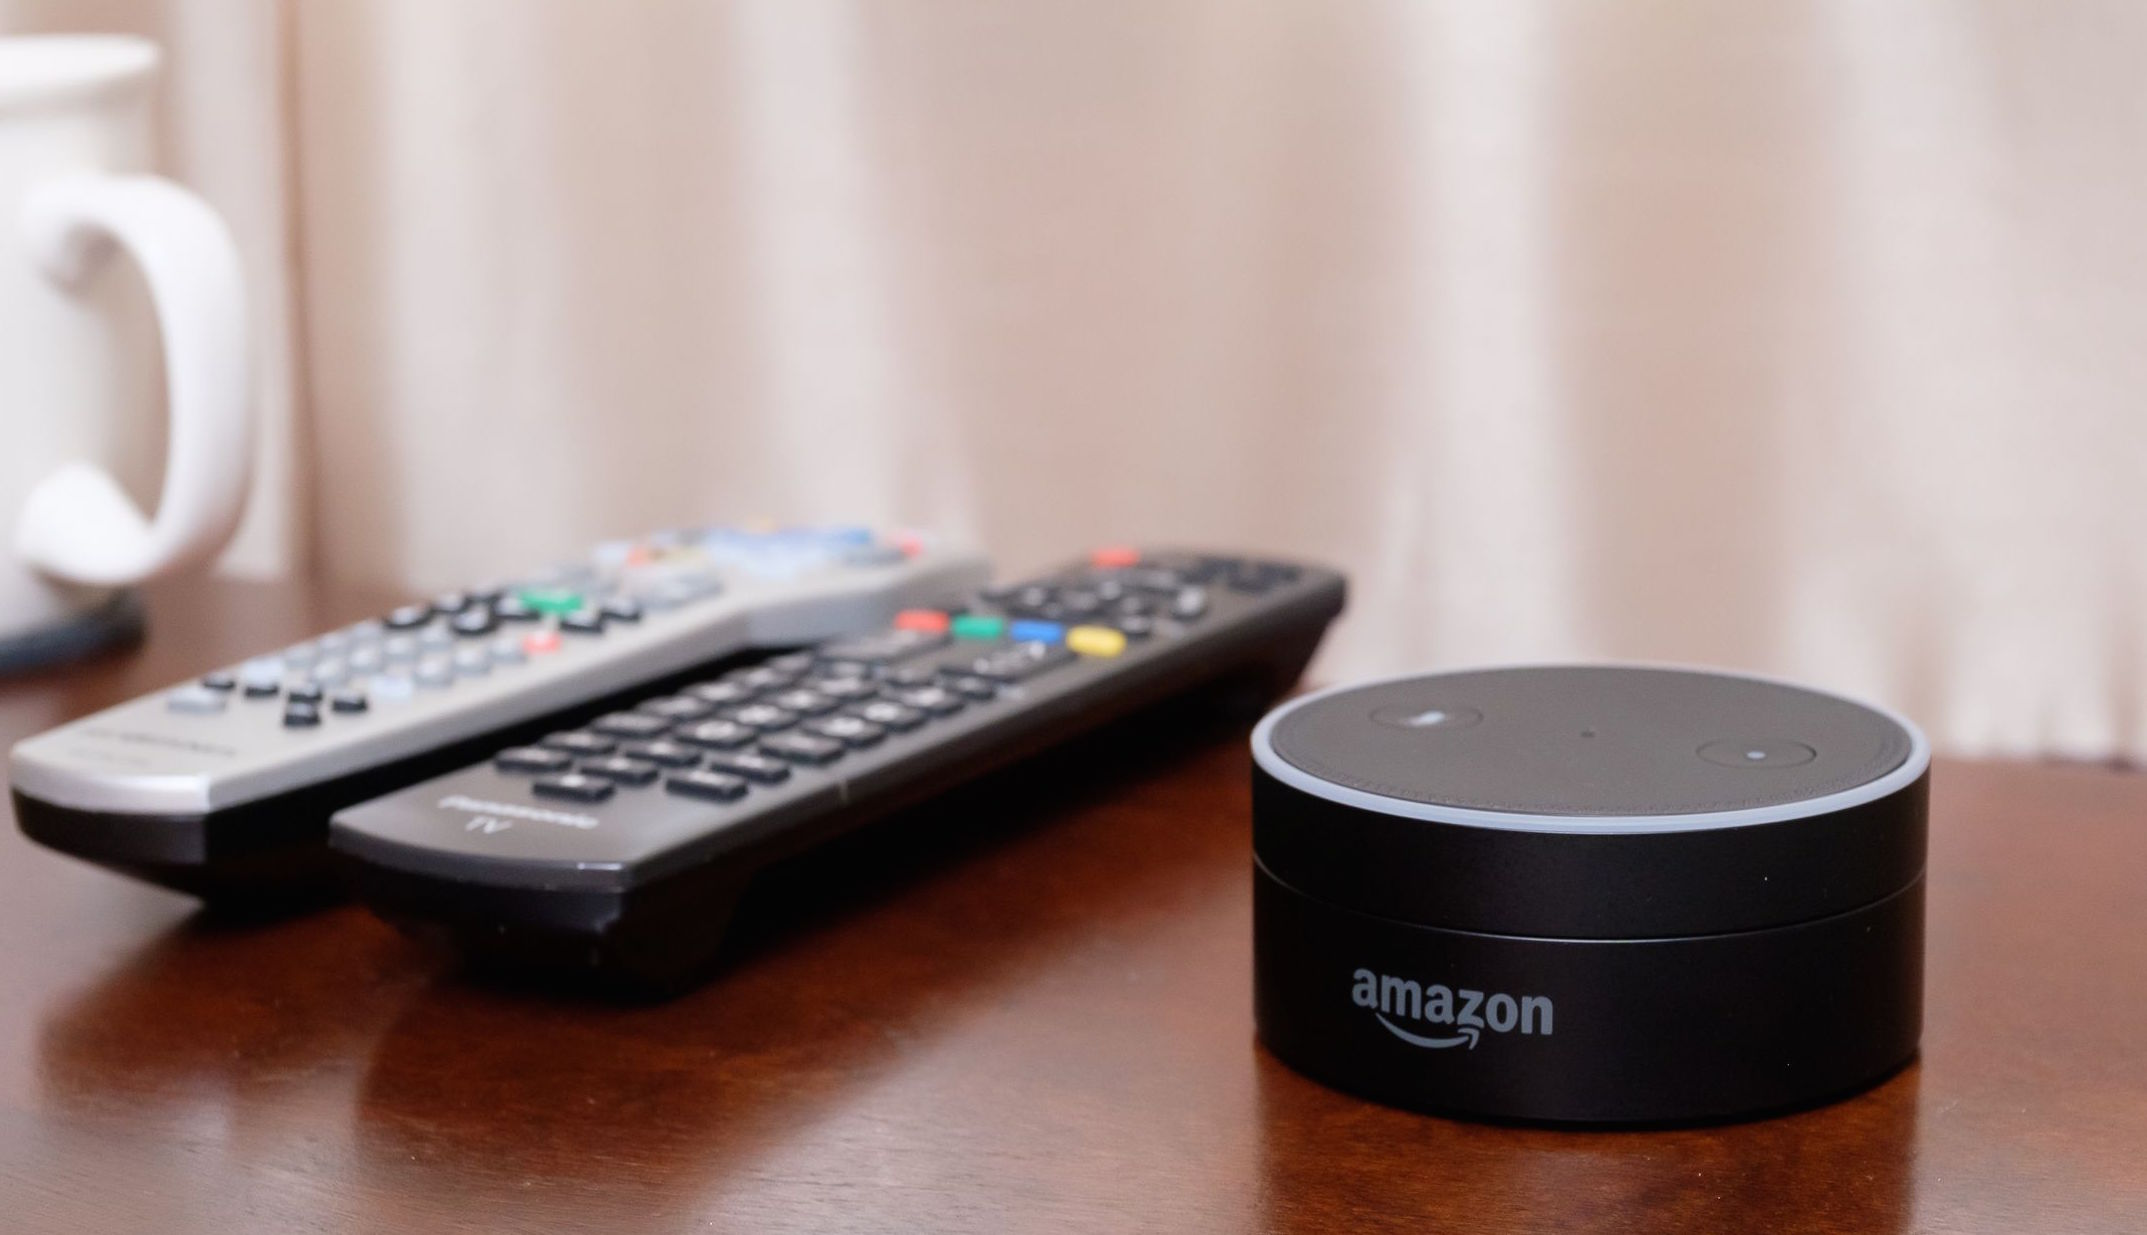 Amazon Echo Dot on a table beside a pair of TV remotes.